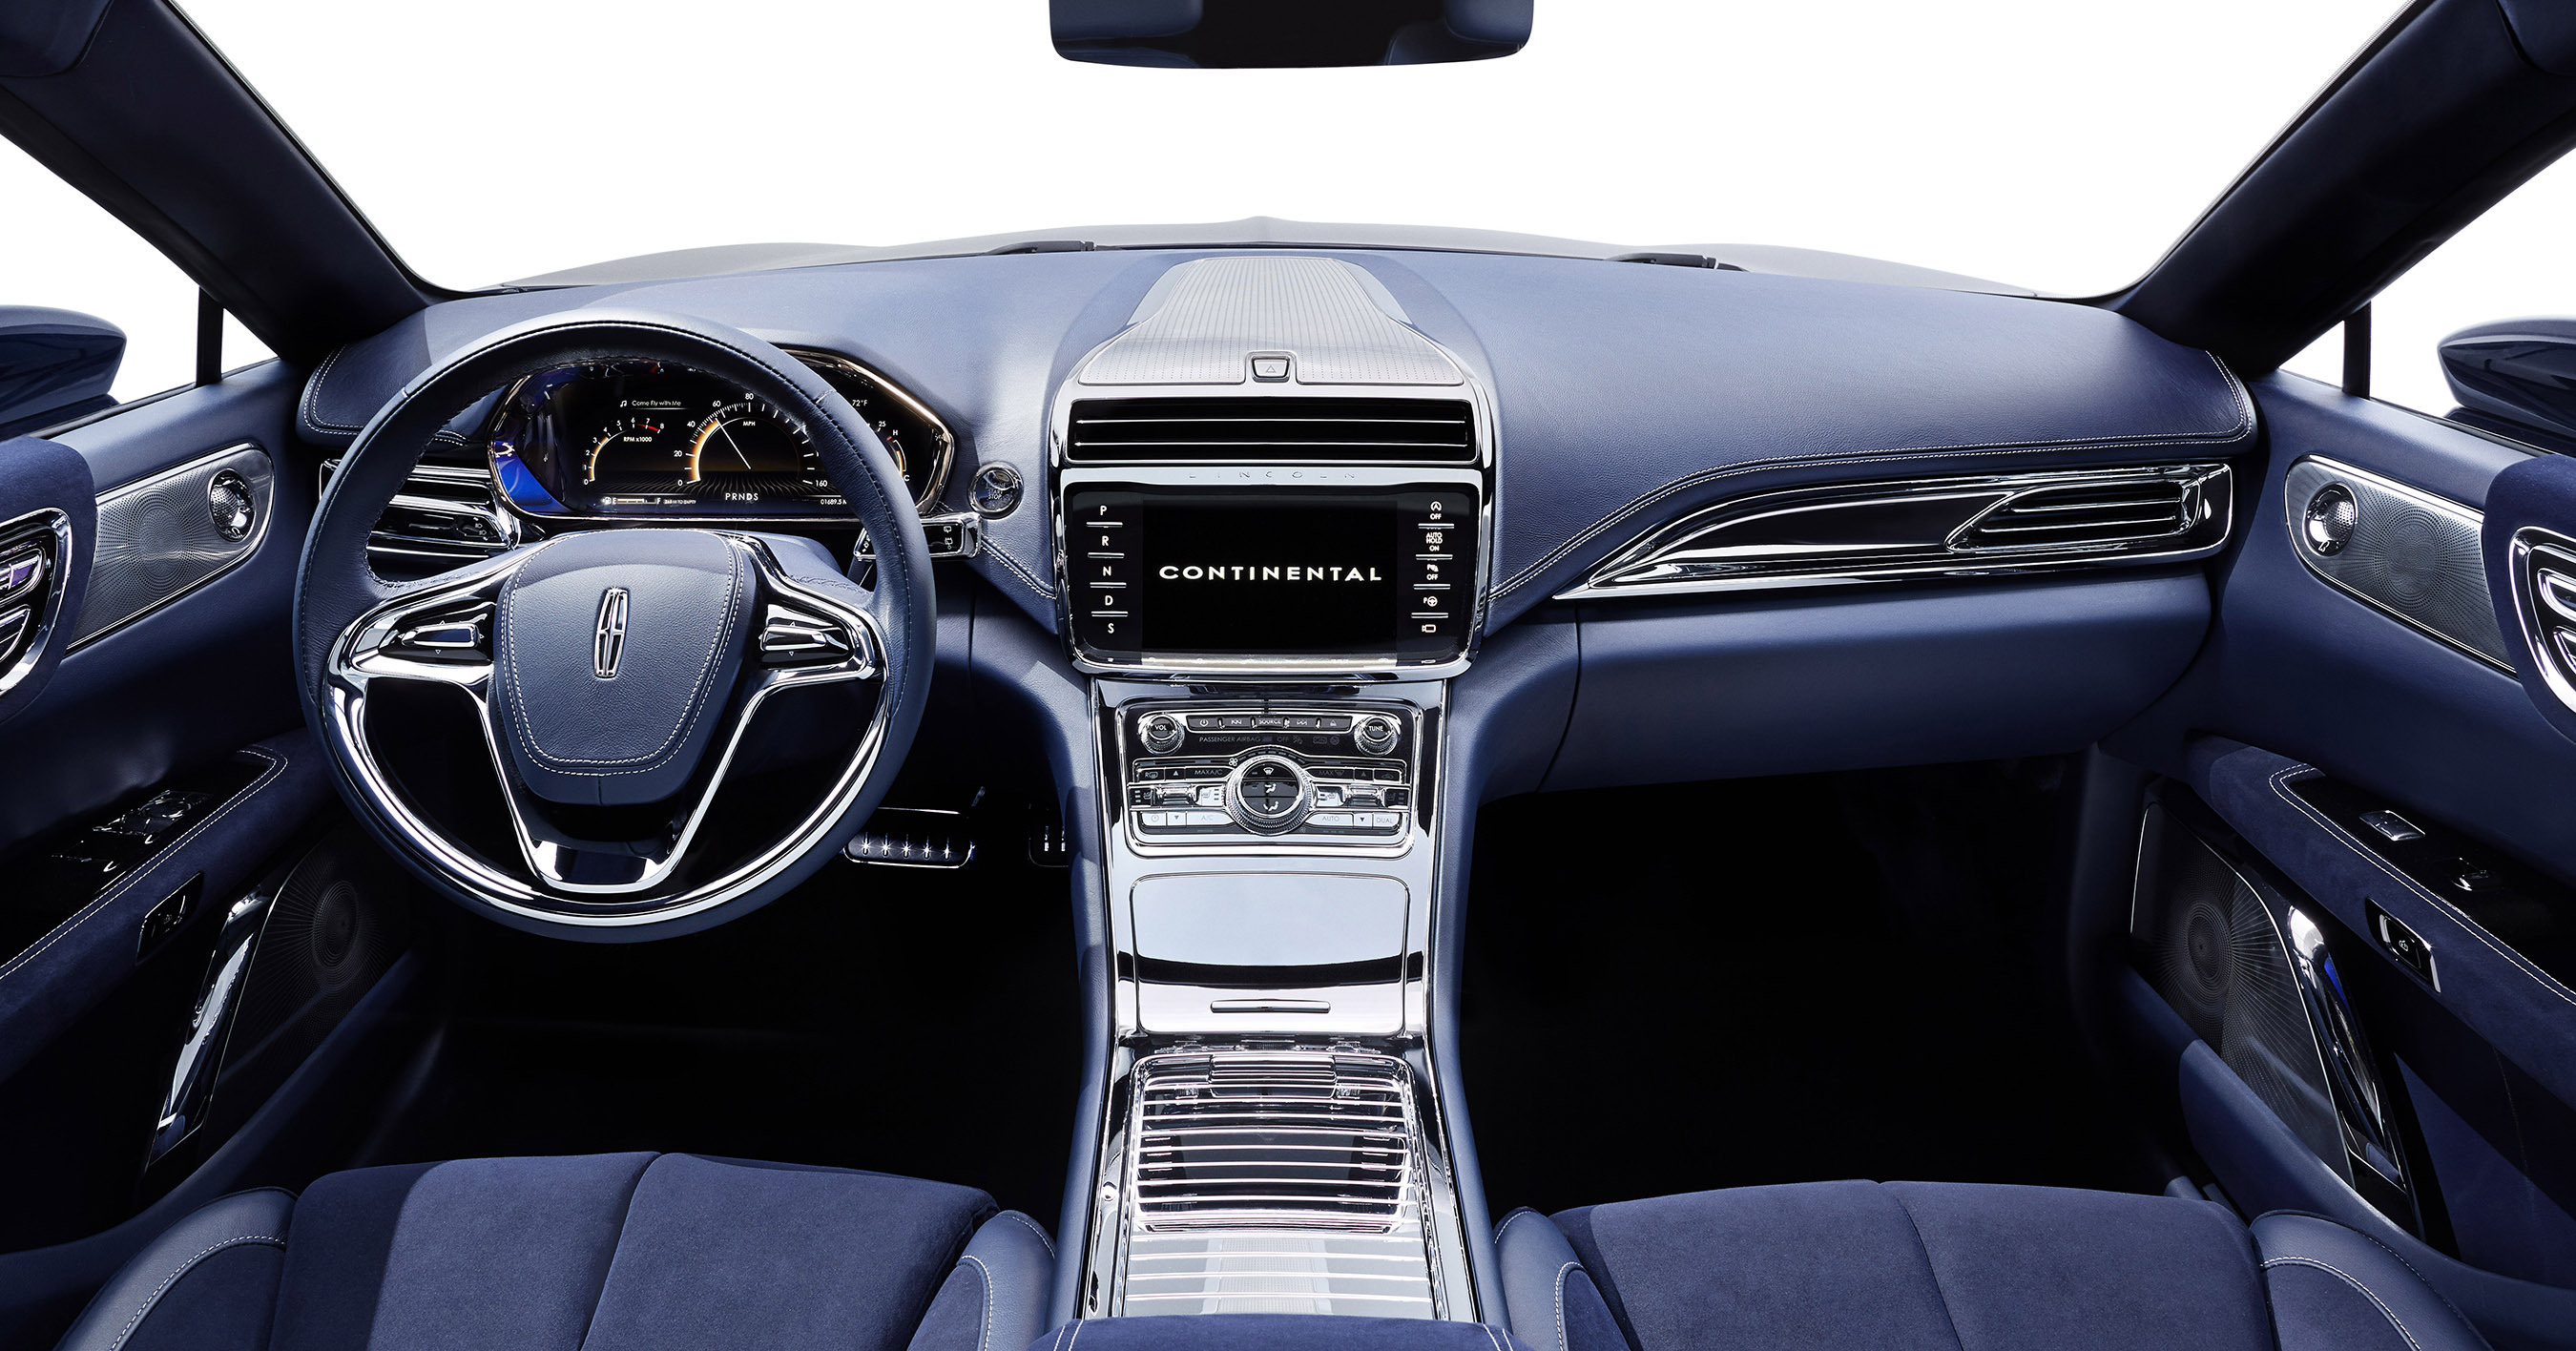 LincolnContinentalConcept_07_Interior-BusinessWire Fascinating Lincoln Continental Used In Hit and Run Cars Trend